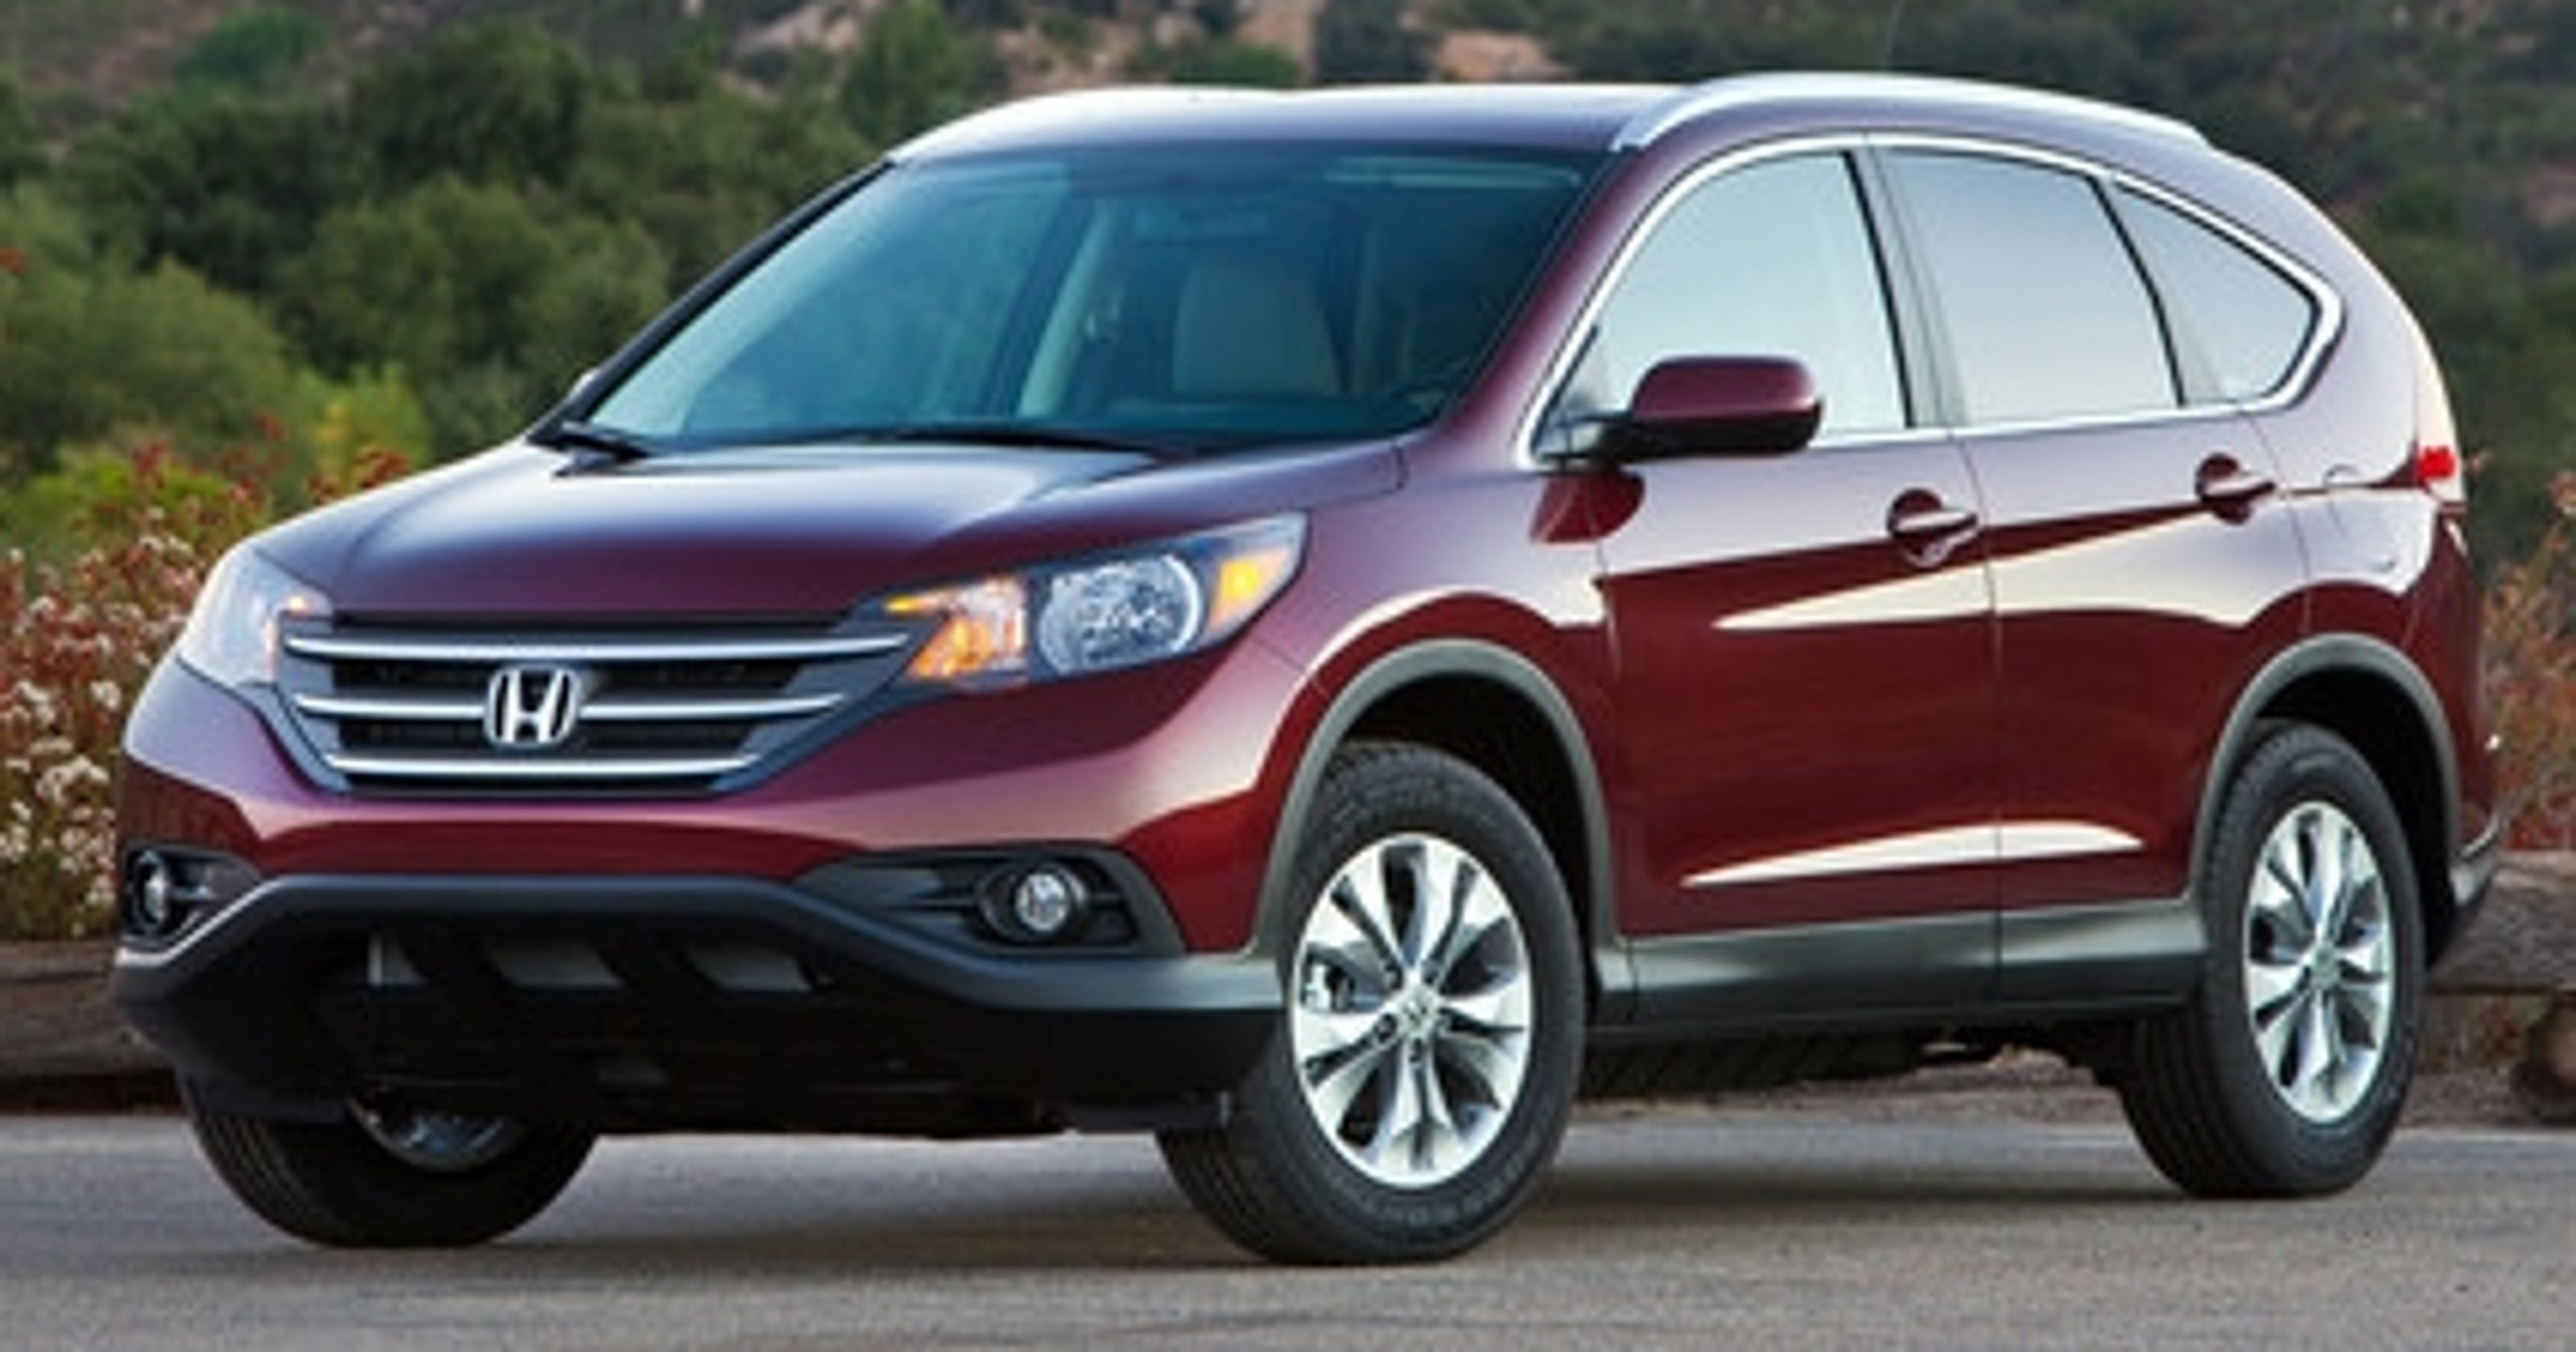 cars compact is of mdx specs acura pictures wallpaper date wonderful suv information connection rdx release